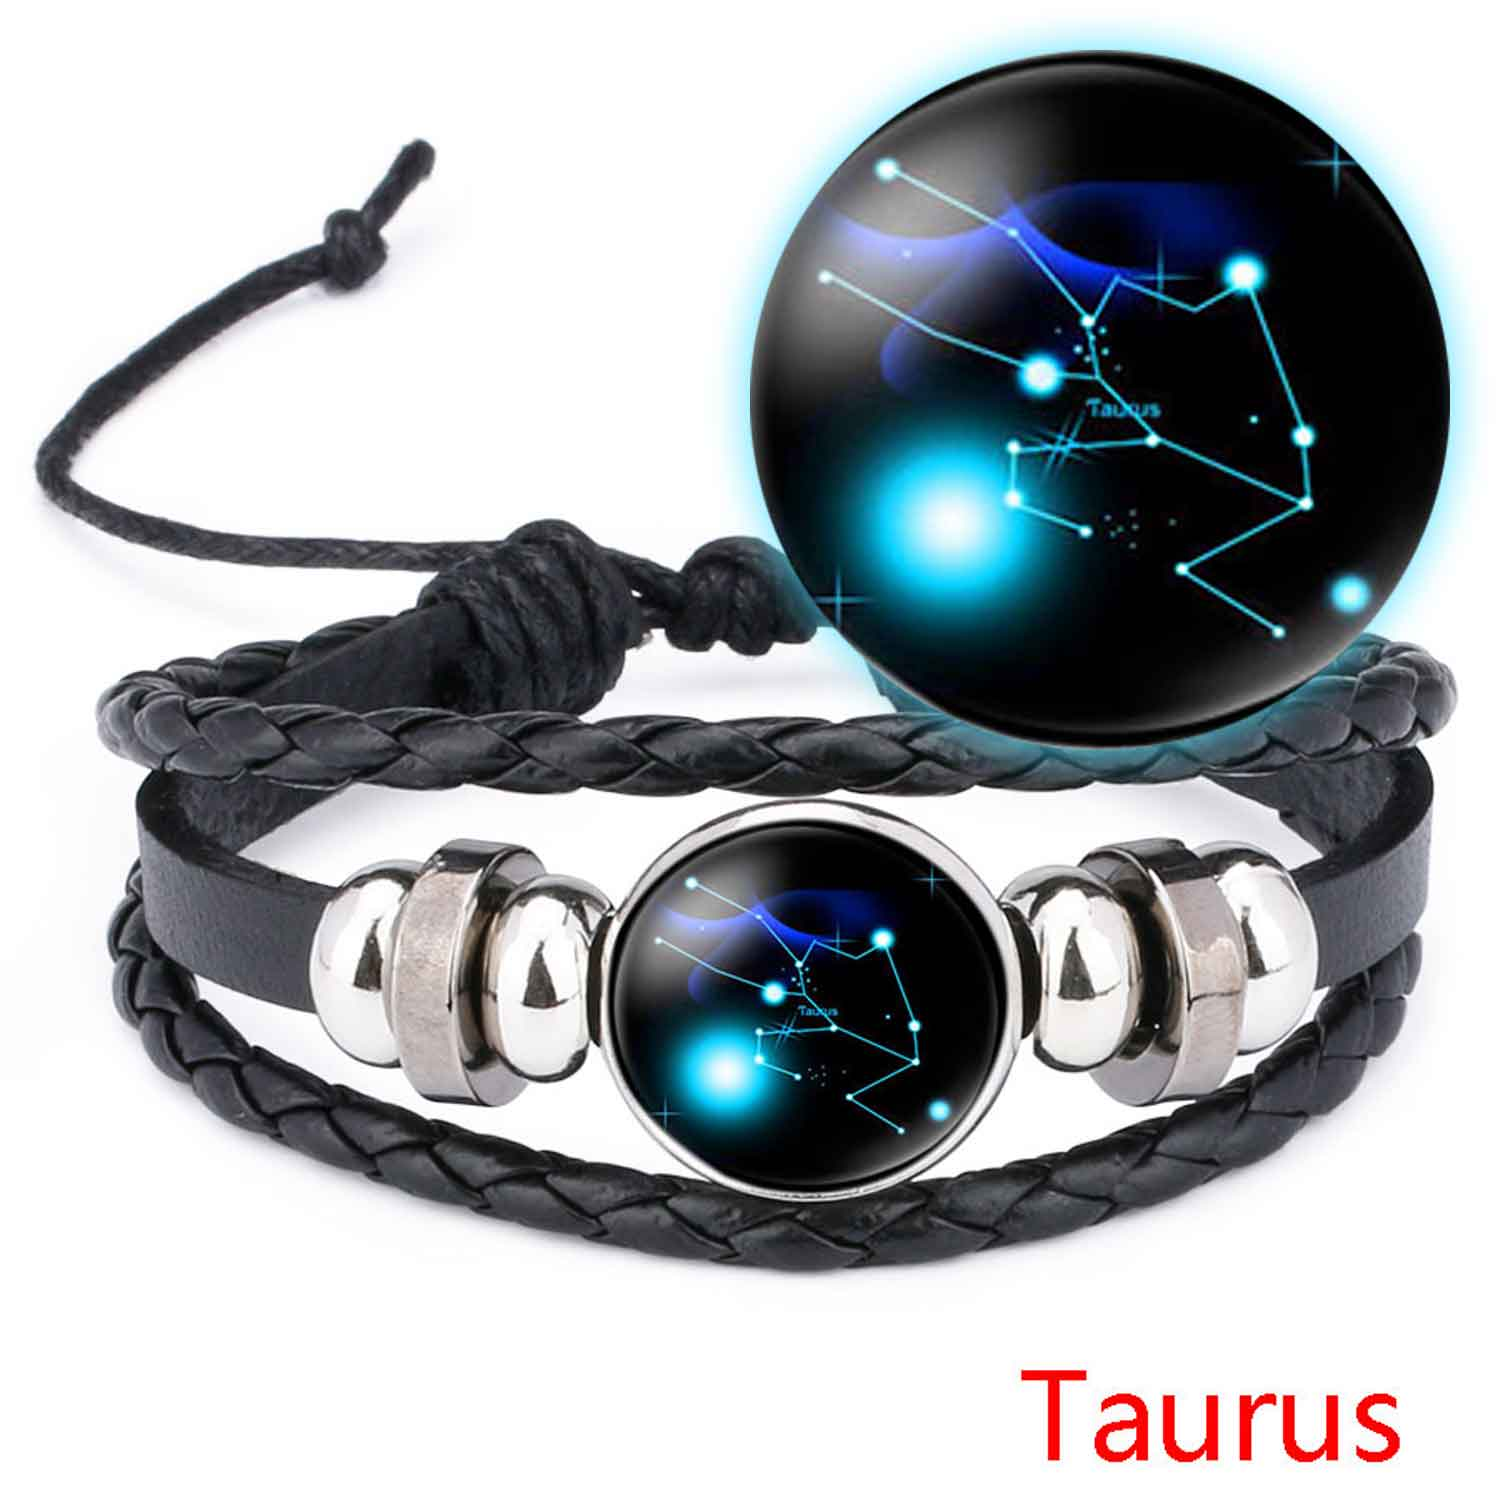 The Strong Taurus Bracelet - GearBody